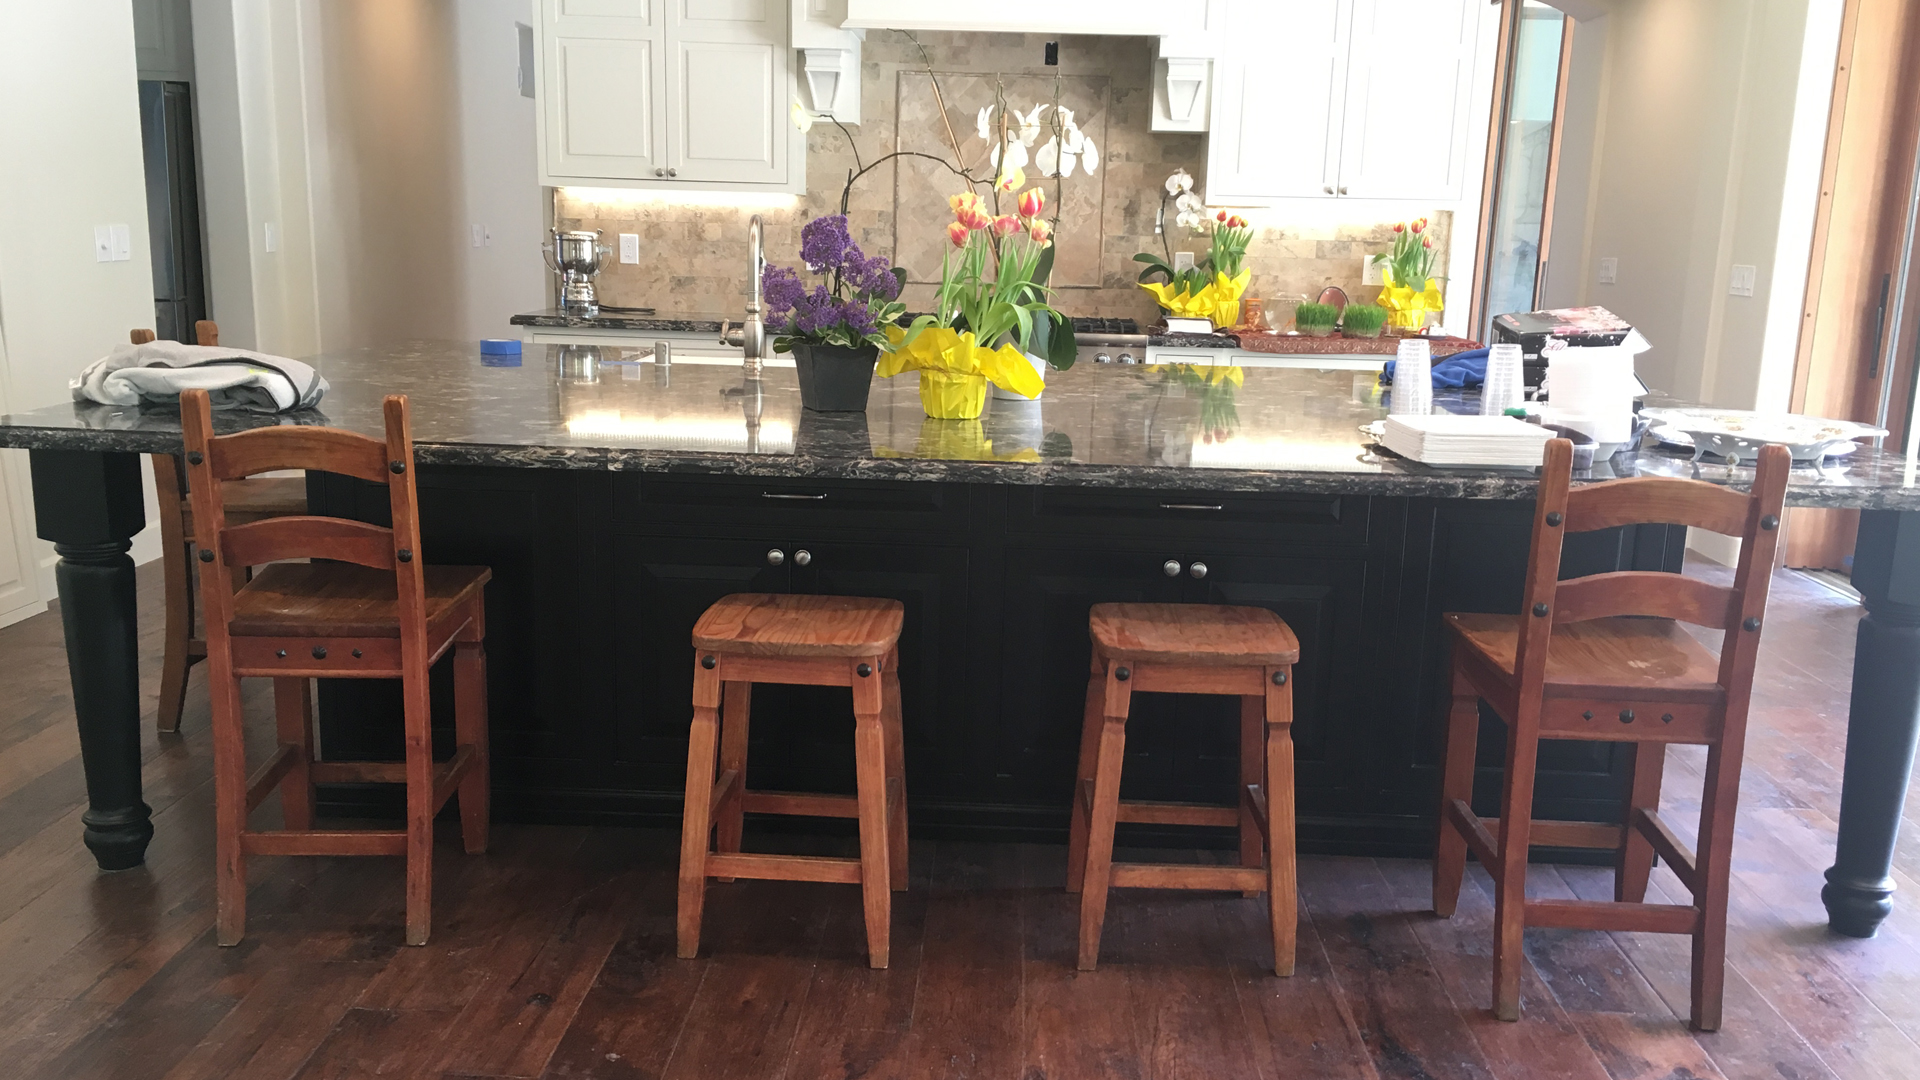 Kitchen Remodeling Fullerton Construction And Remodeling - Kitchen remodeling anaheim